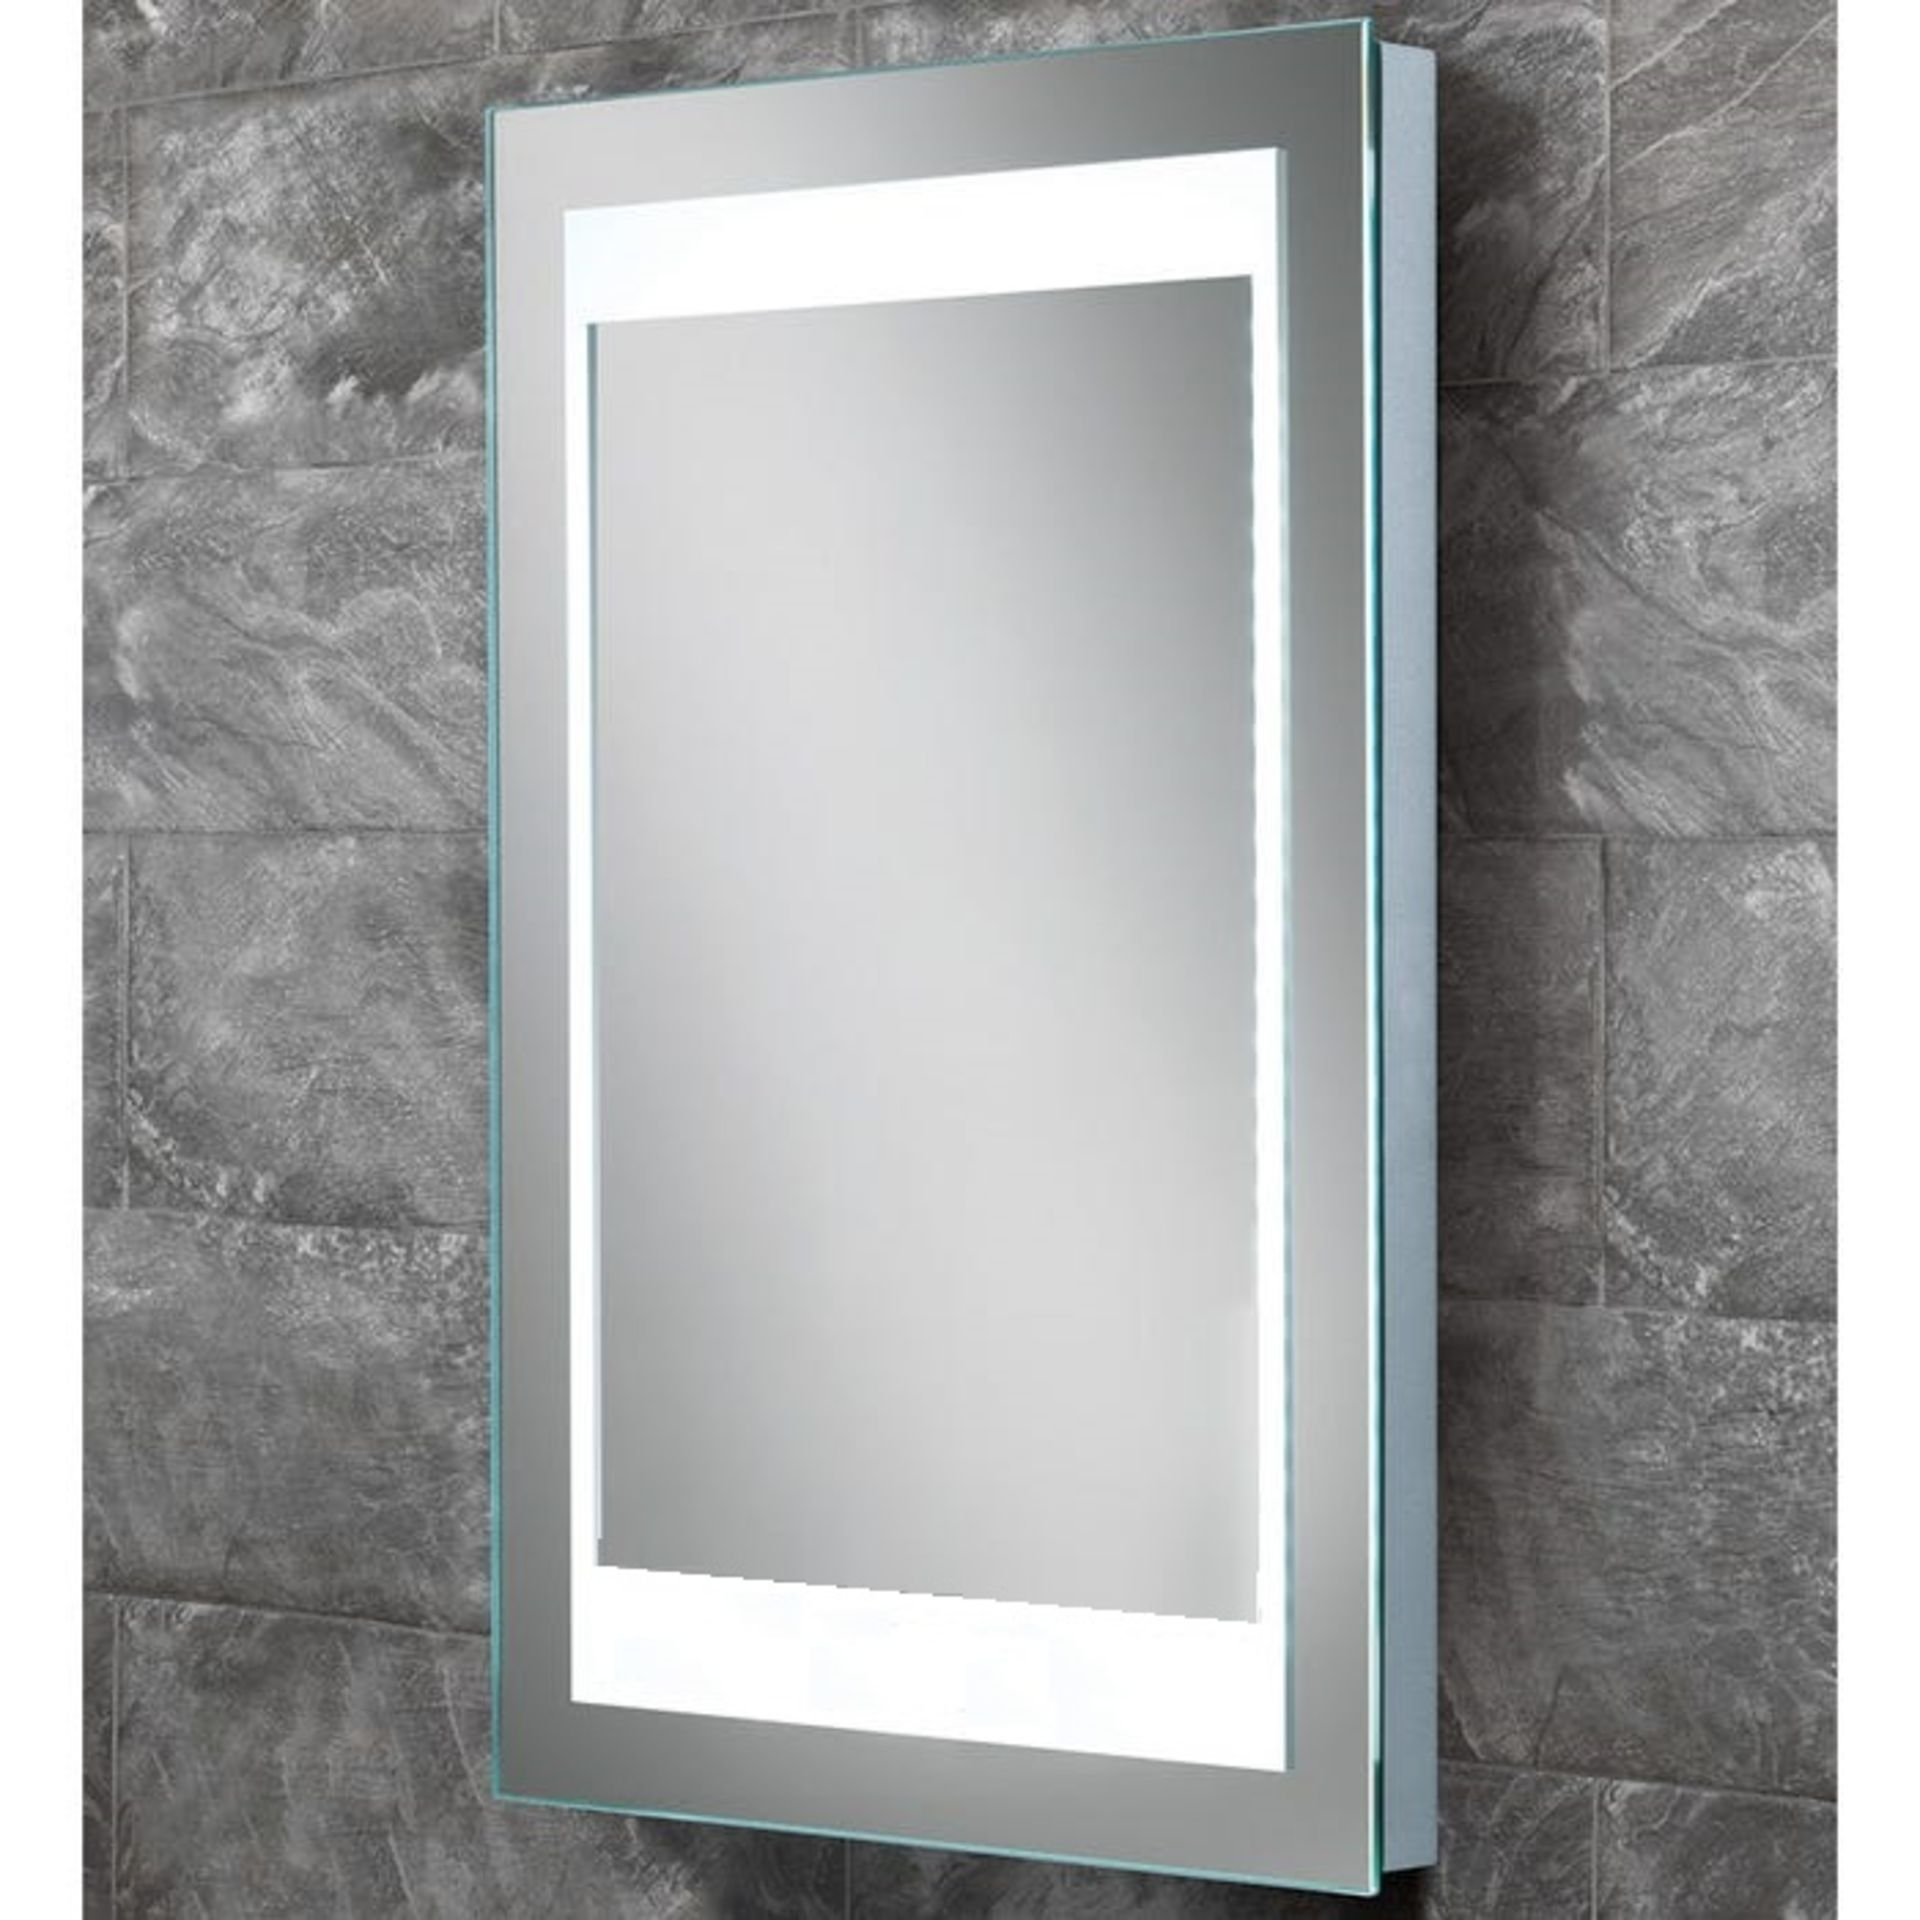 Lot 22 - Bathstore 'Atmos' designer back lit LED illuminated mirror with de-mister and no-touch sensor